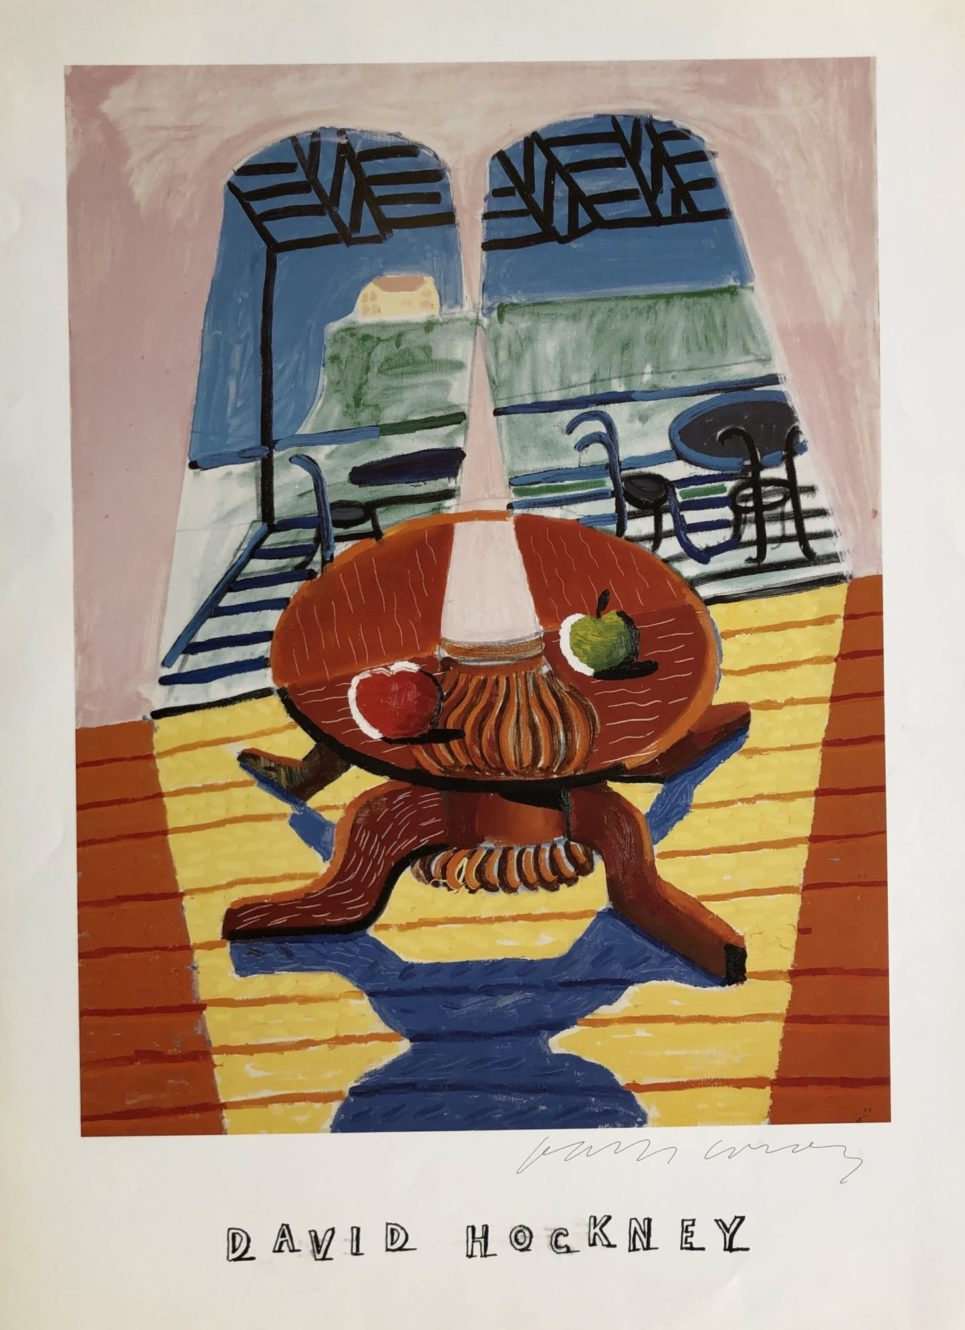 David Hockney - Christopher and Don's Dining Room